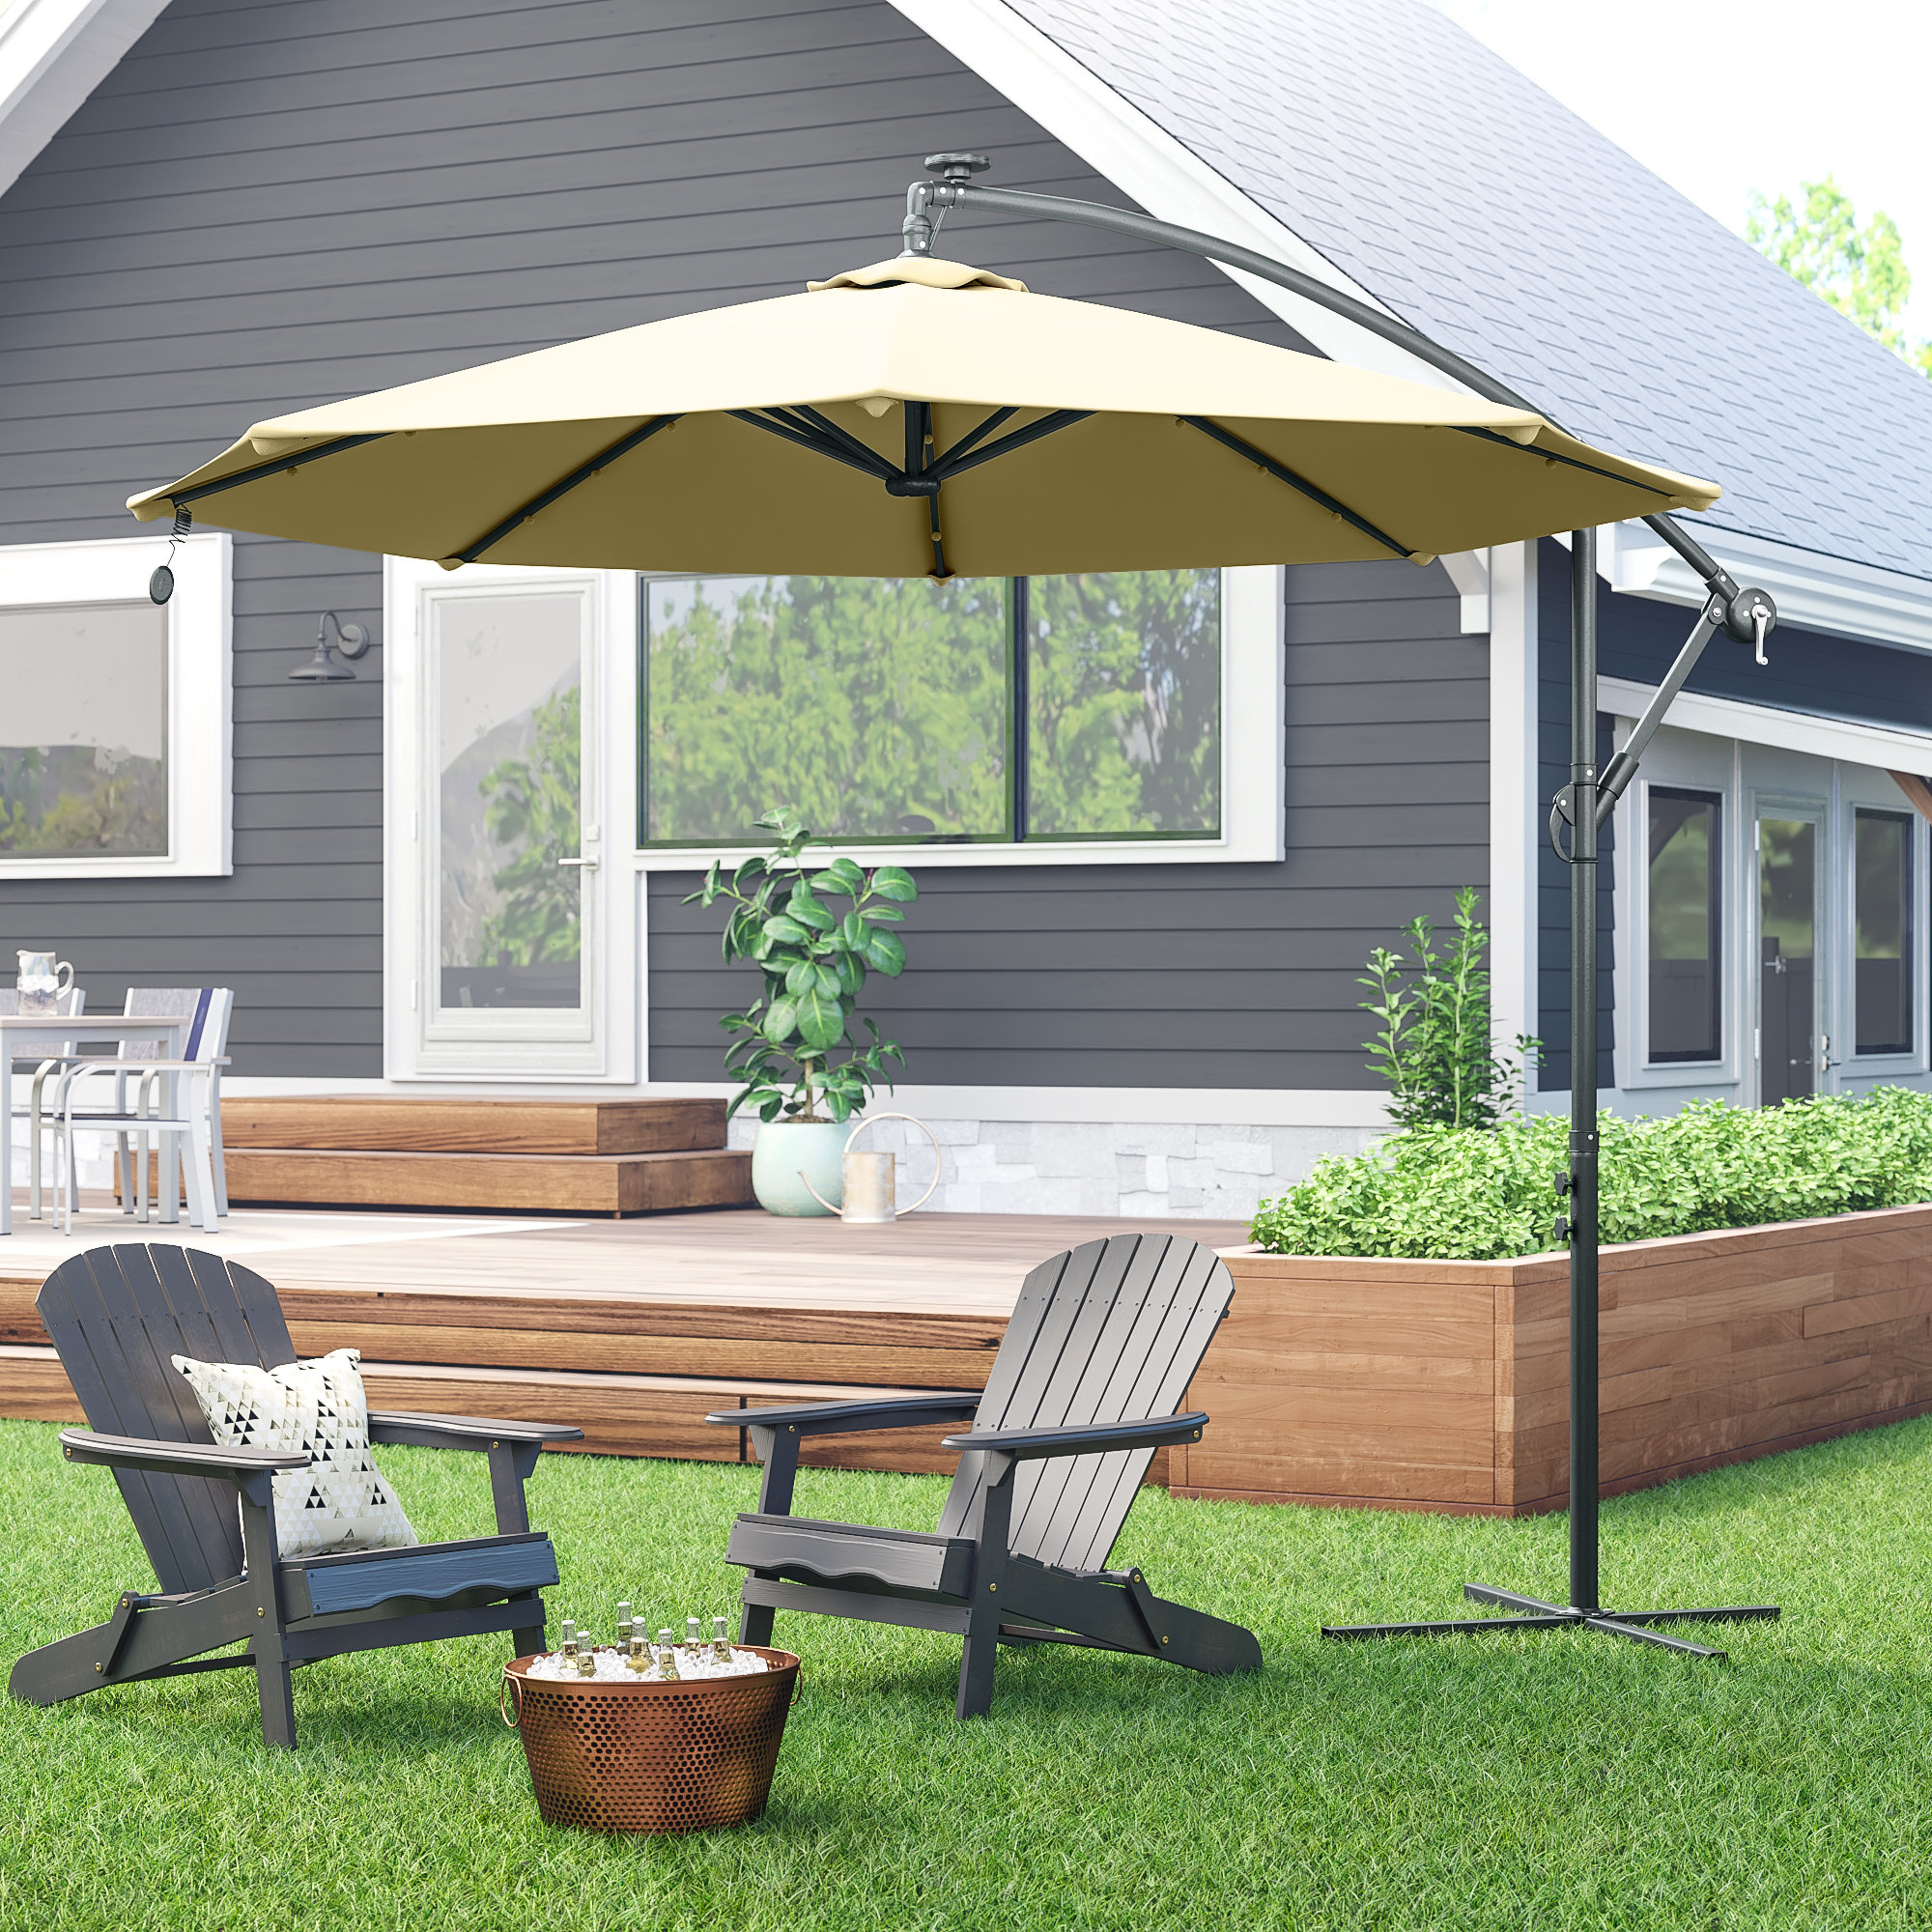 Wayfair With Regard To Newest Judah Cantilever Umbrellas (View 10 of 20)